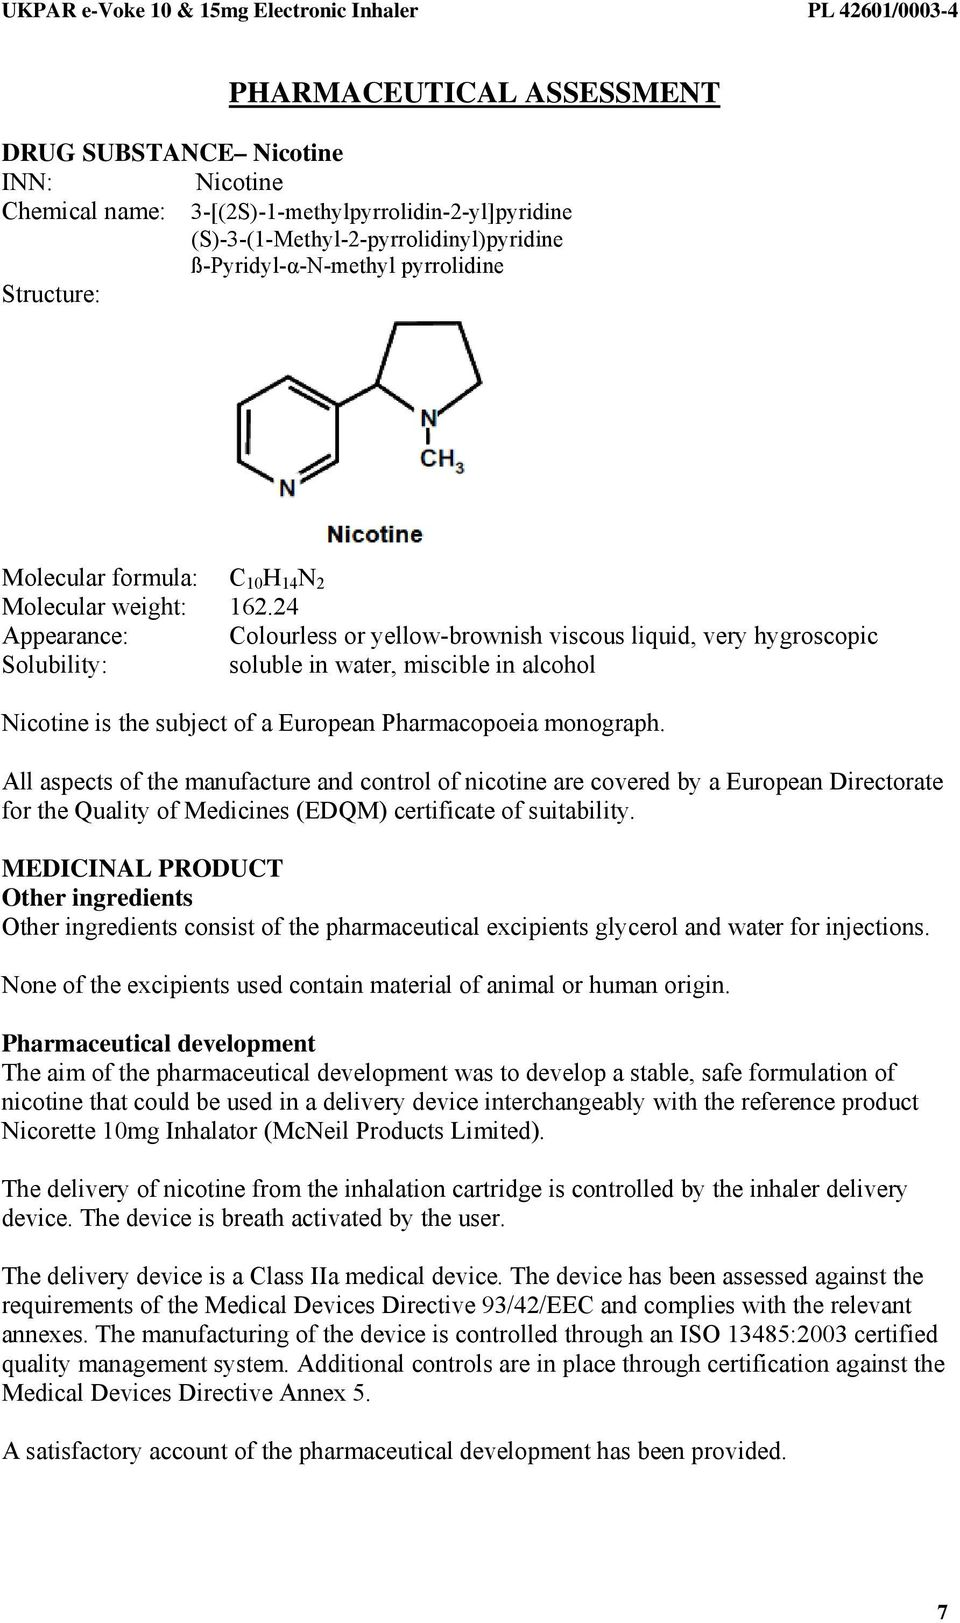 24 Appearance: Colourless or yellow-brownish viscous liquid, very hygroscopic Solubility: soluble in water, miscible in alcohol Nicotine is the subject of a European Pharmacopoeia monograph.